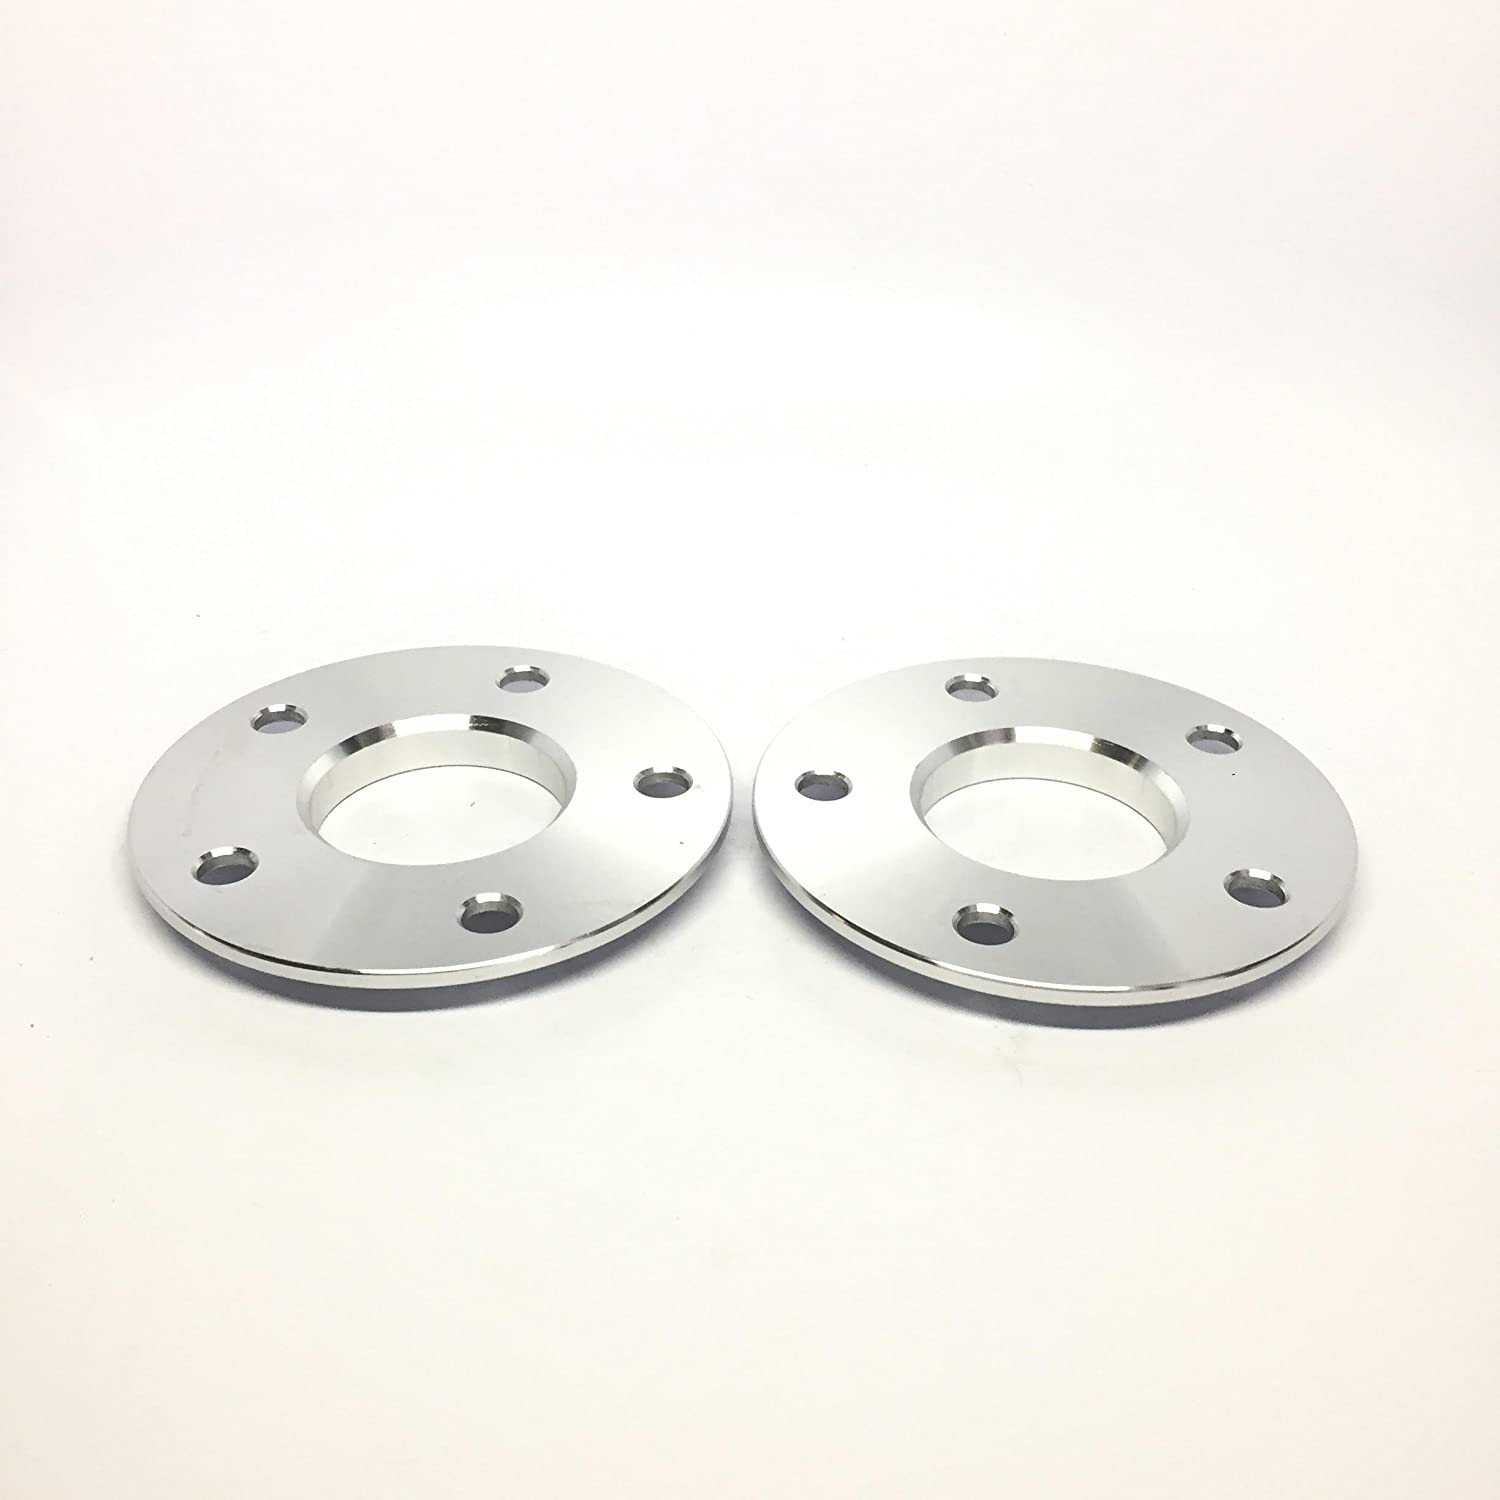 Customadeonly 2 Pieces 3//16 5mm Hub Centric Wheel Spacers Fits Wheels with 73.1mm Bore Only 5x114.3 5x4.5 Center Bore 67.1 to 73.1mm Change Center BORE